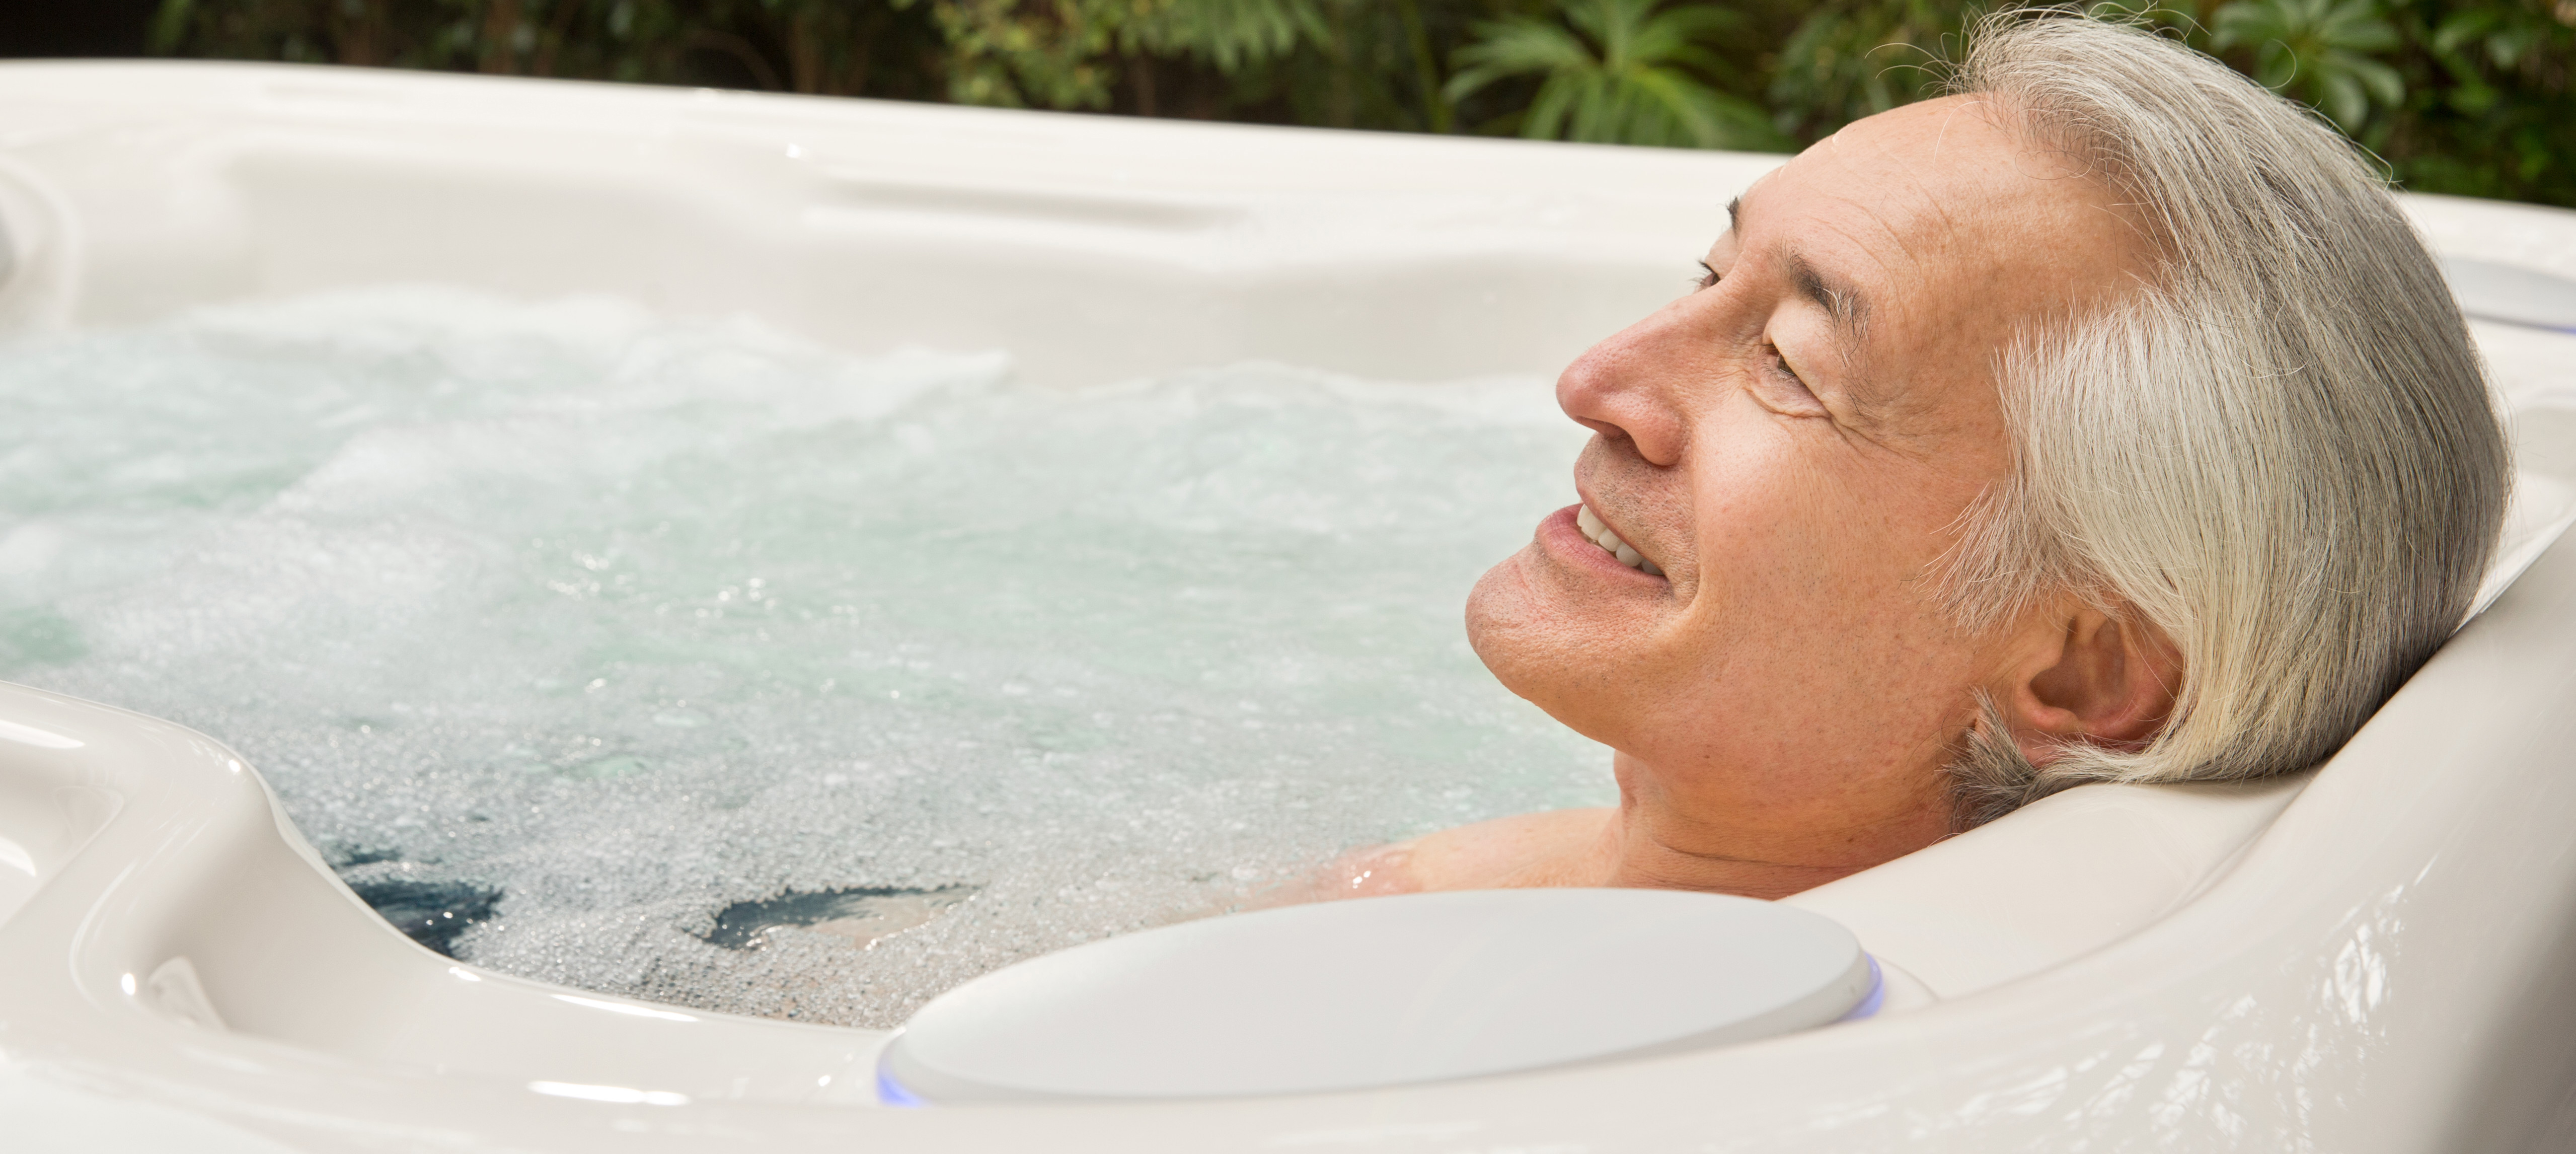 What is Hot Tub Therapy?